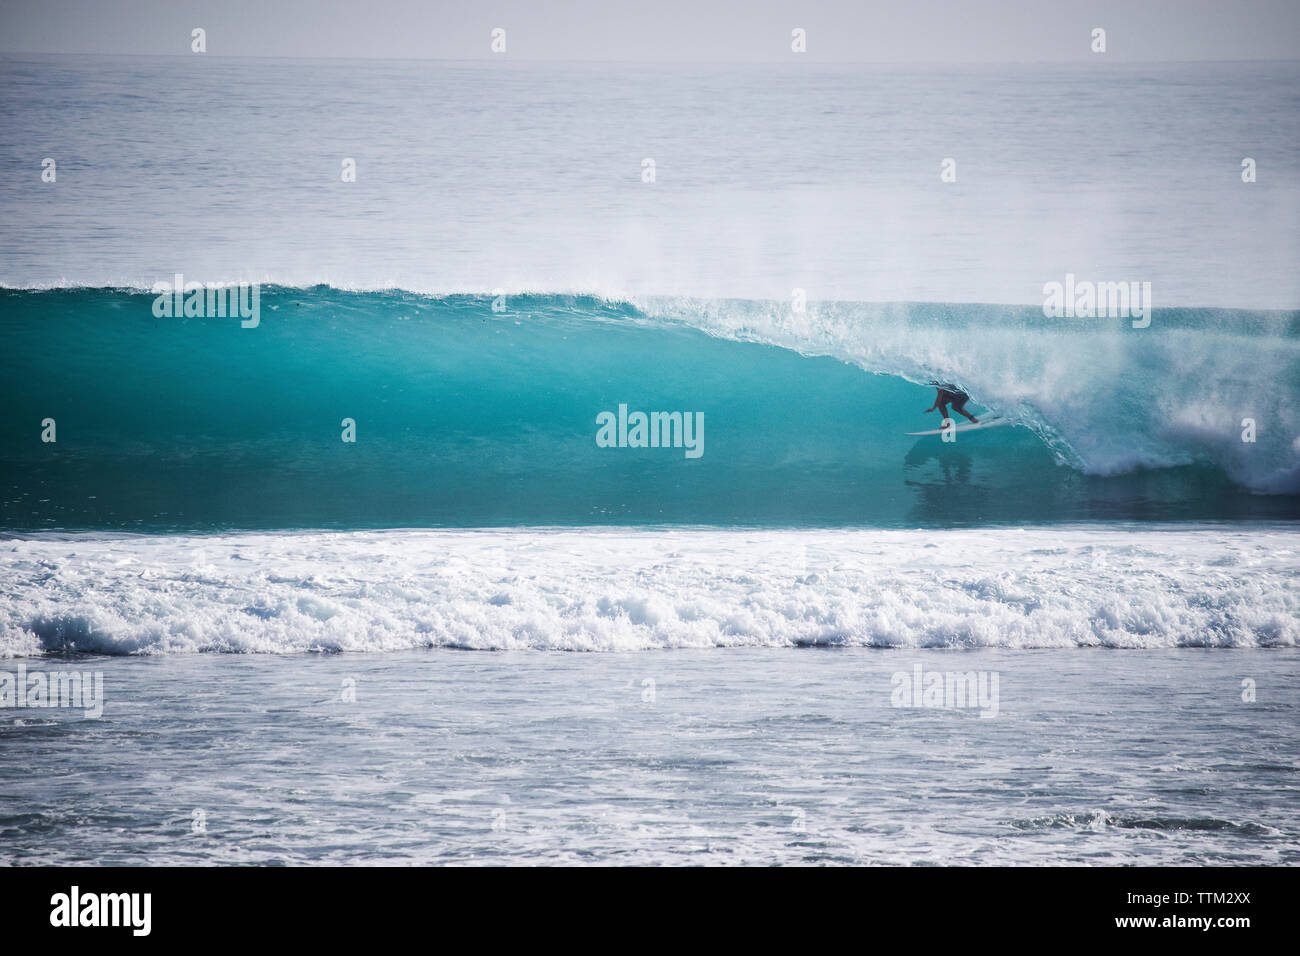 Person surfing in rolling surf at Mentawai Islands - Stock Image